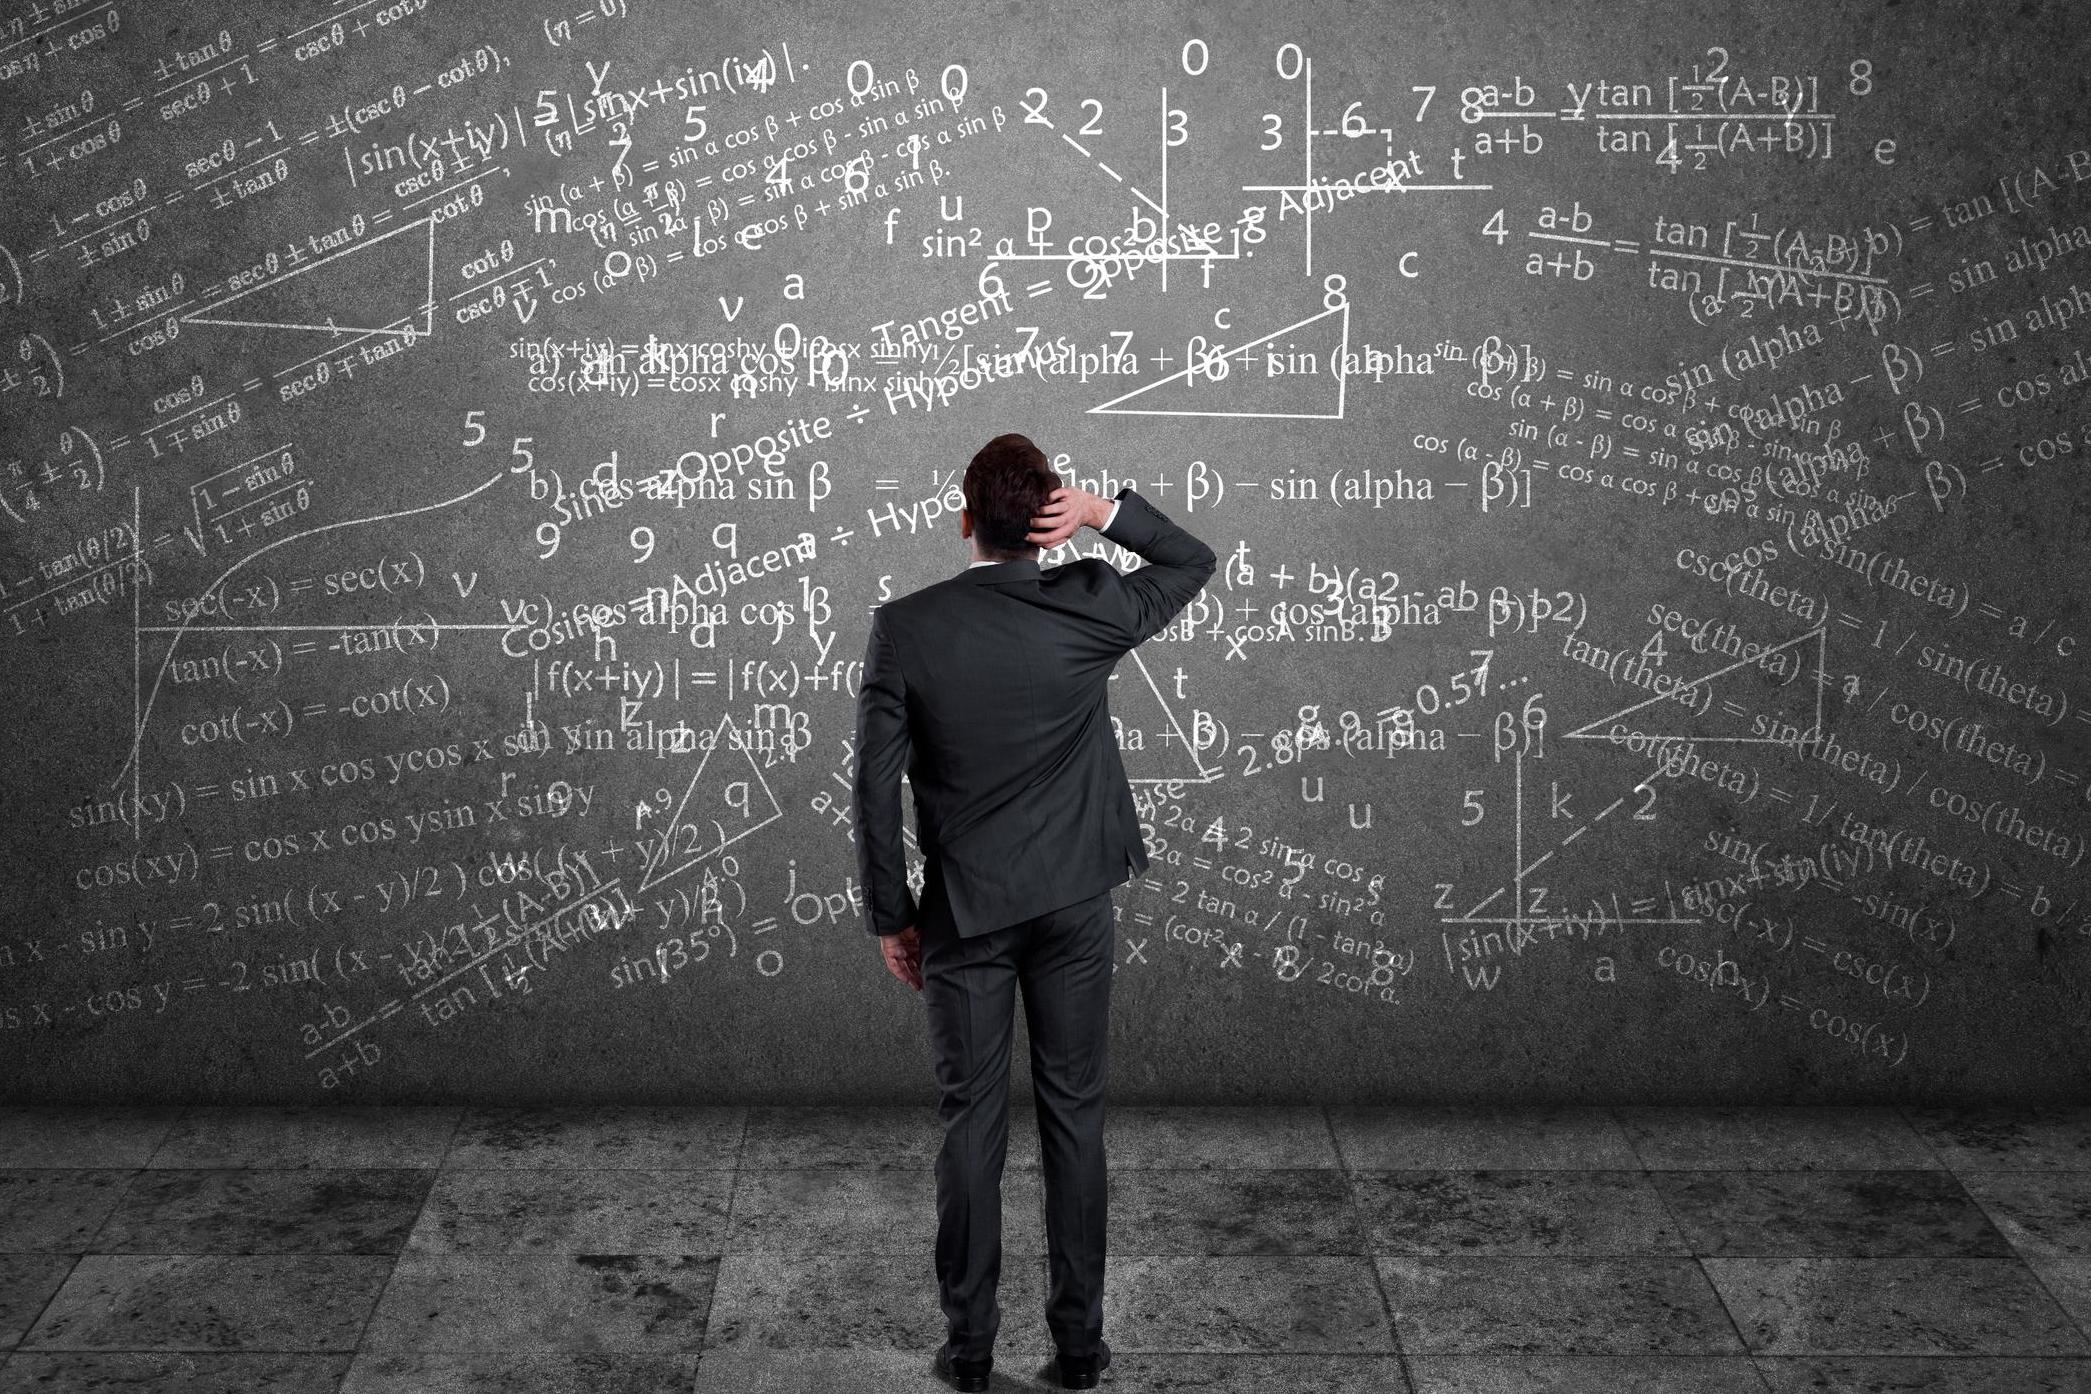 bilingual people process maths differently depending on the language the independent